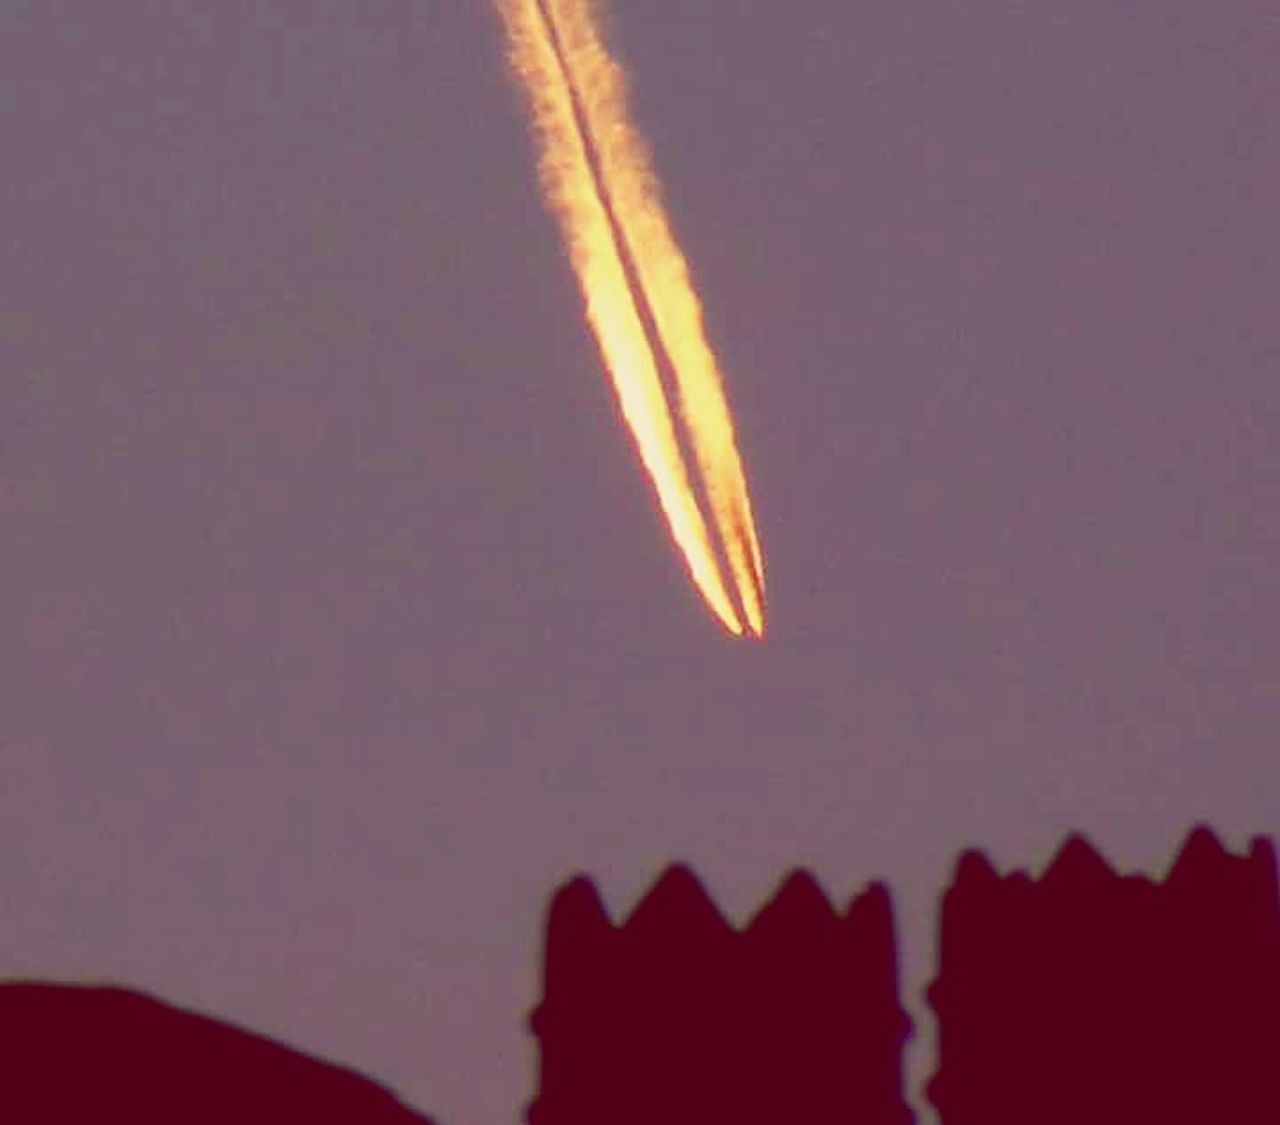 no people, night, space exploration, sky, flying, outdoors, space, nature, vapor trail, close-up